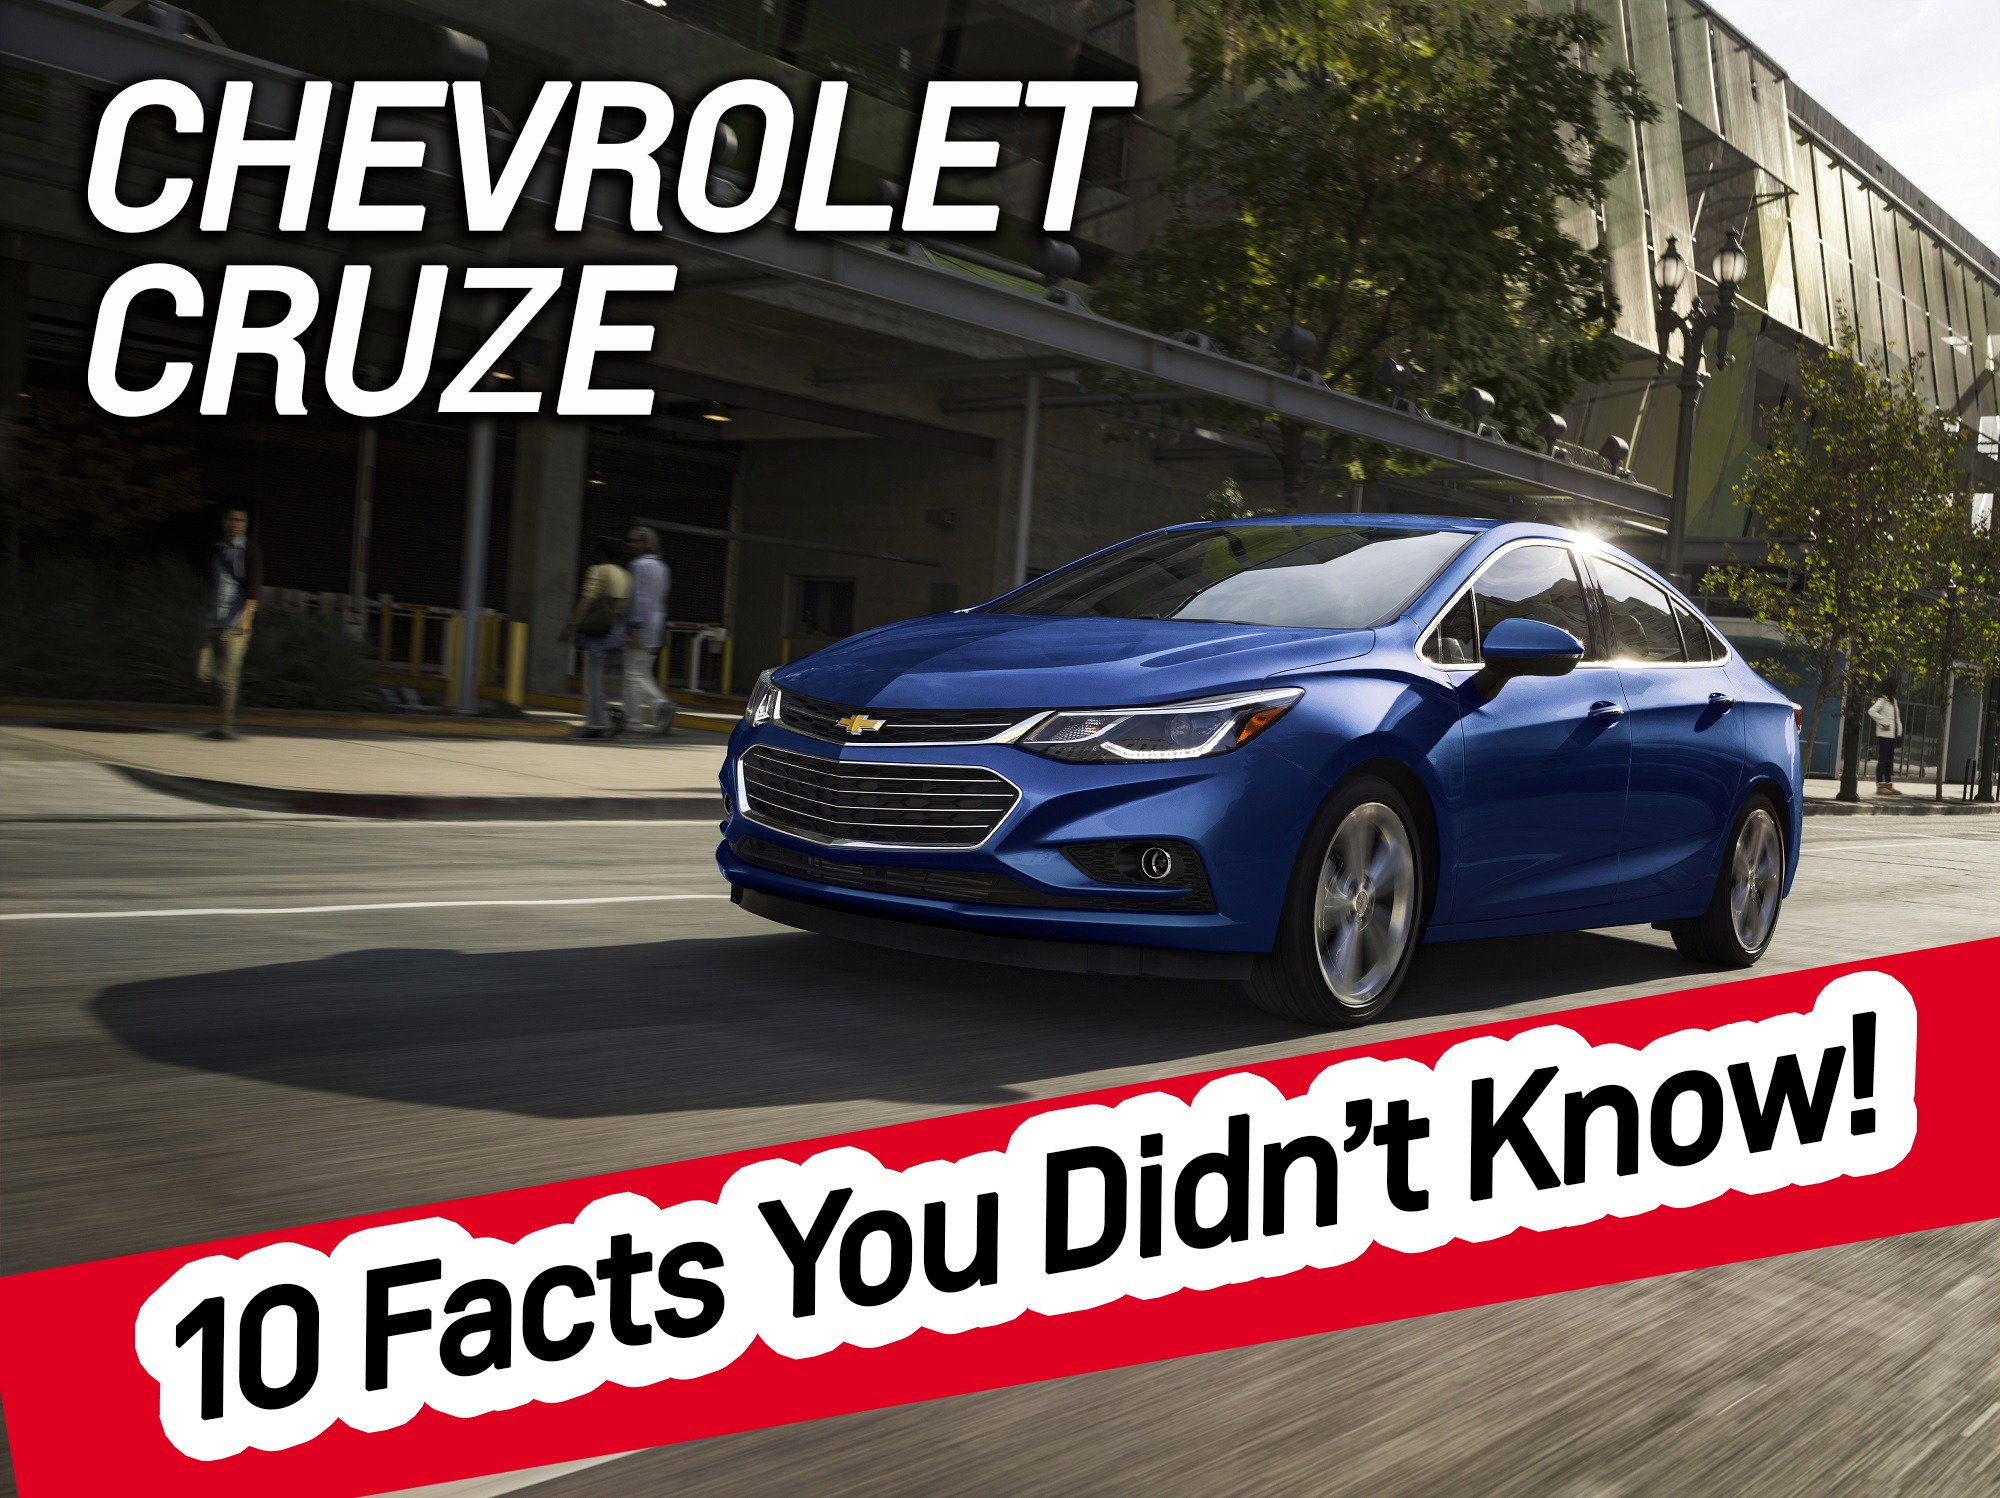 hight resolution of 2017 chevrolet cruze 10 facts you didn t know